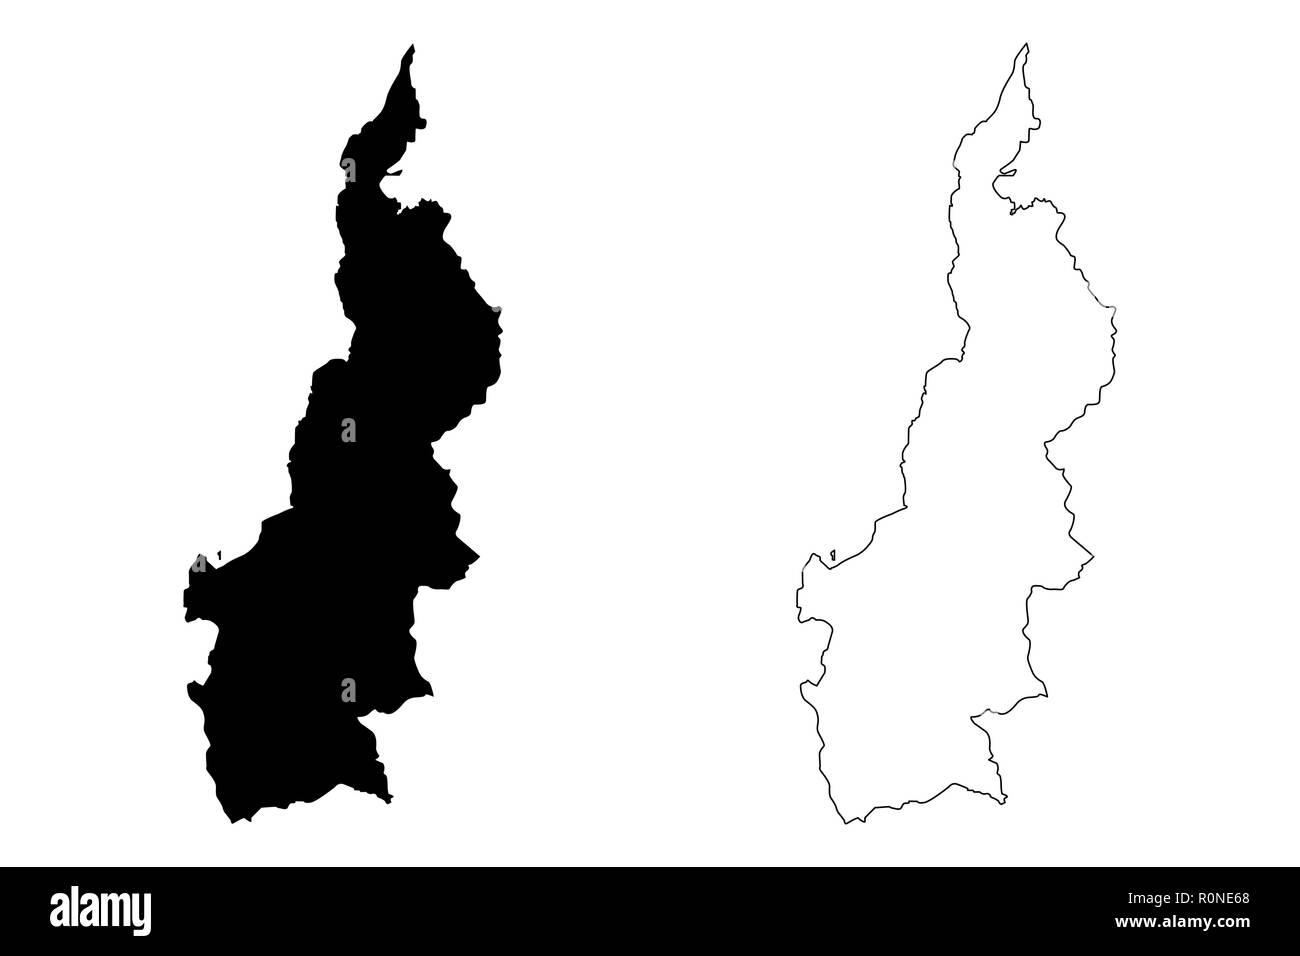 West Sulawesi (Subdivisions of Indonesia, Provinces of Indonesia) map vector illustration, scribble sketch Sulawesi Barat map - Stock Image